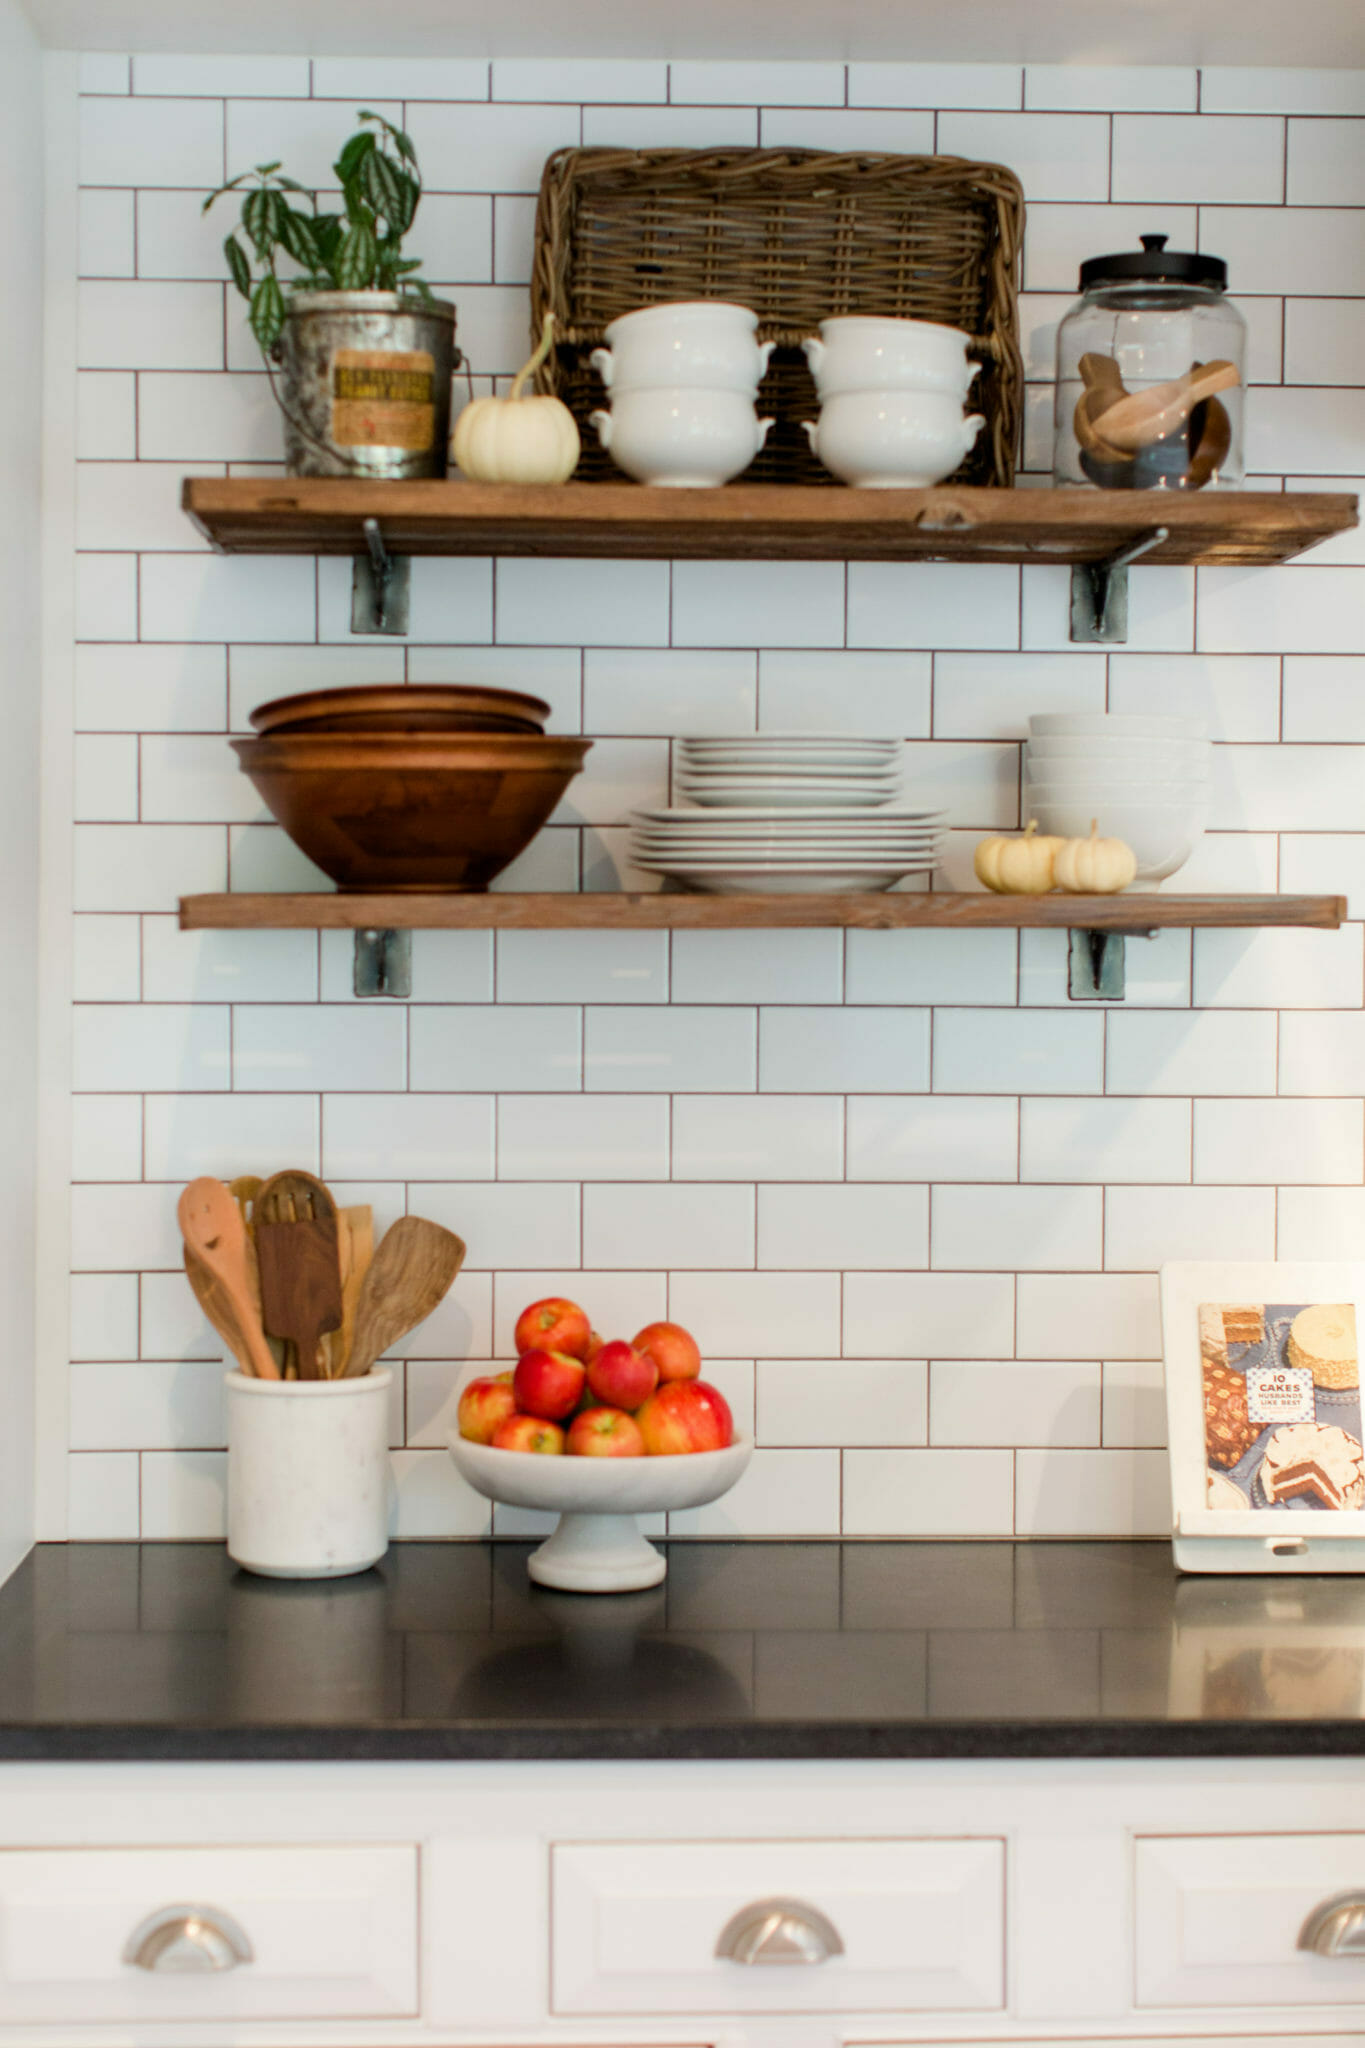 Easy Kitchen Remodel: Simple Changes to Transform the Look of Your Kitchen || JennyCookies.com #kitchen #kitchenremodel #diykitchen #jennycookies